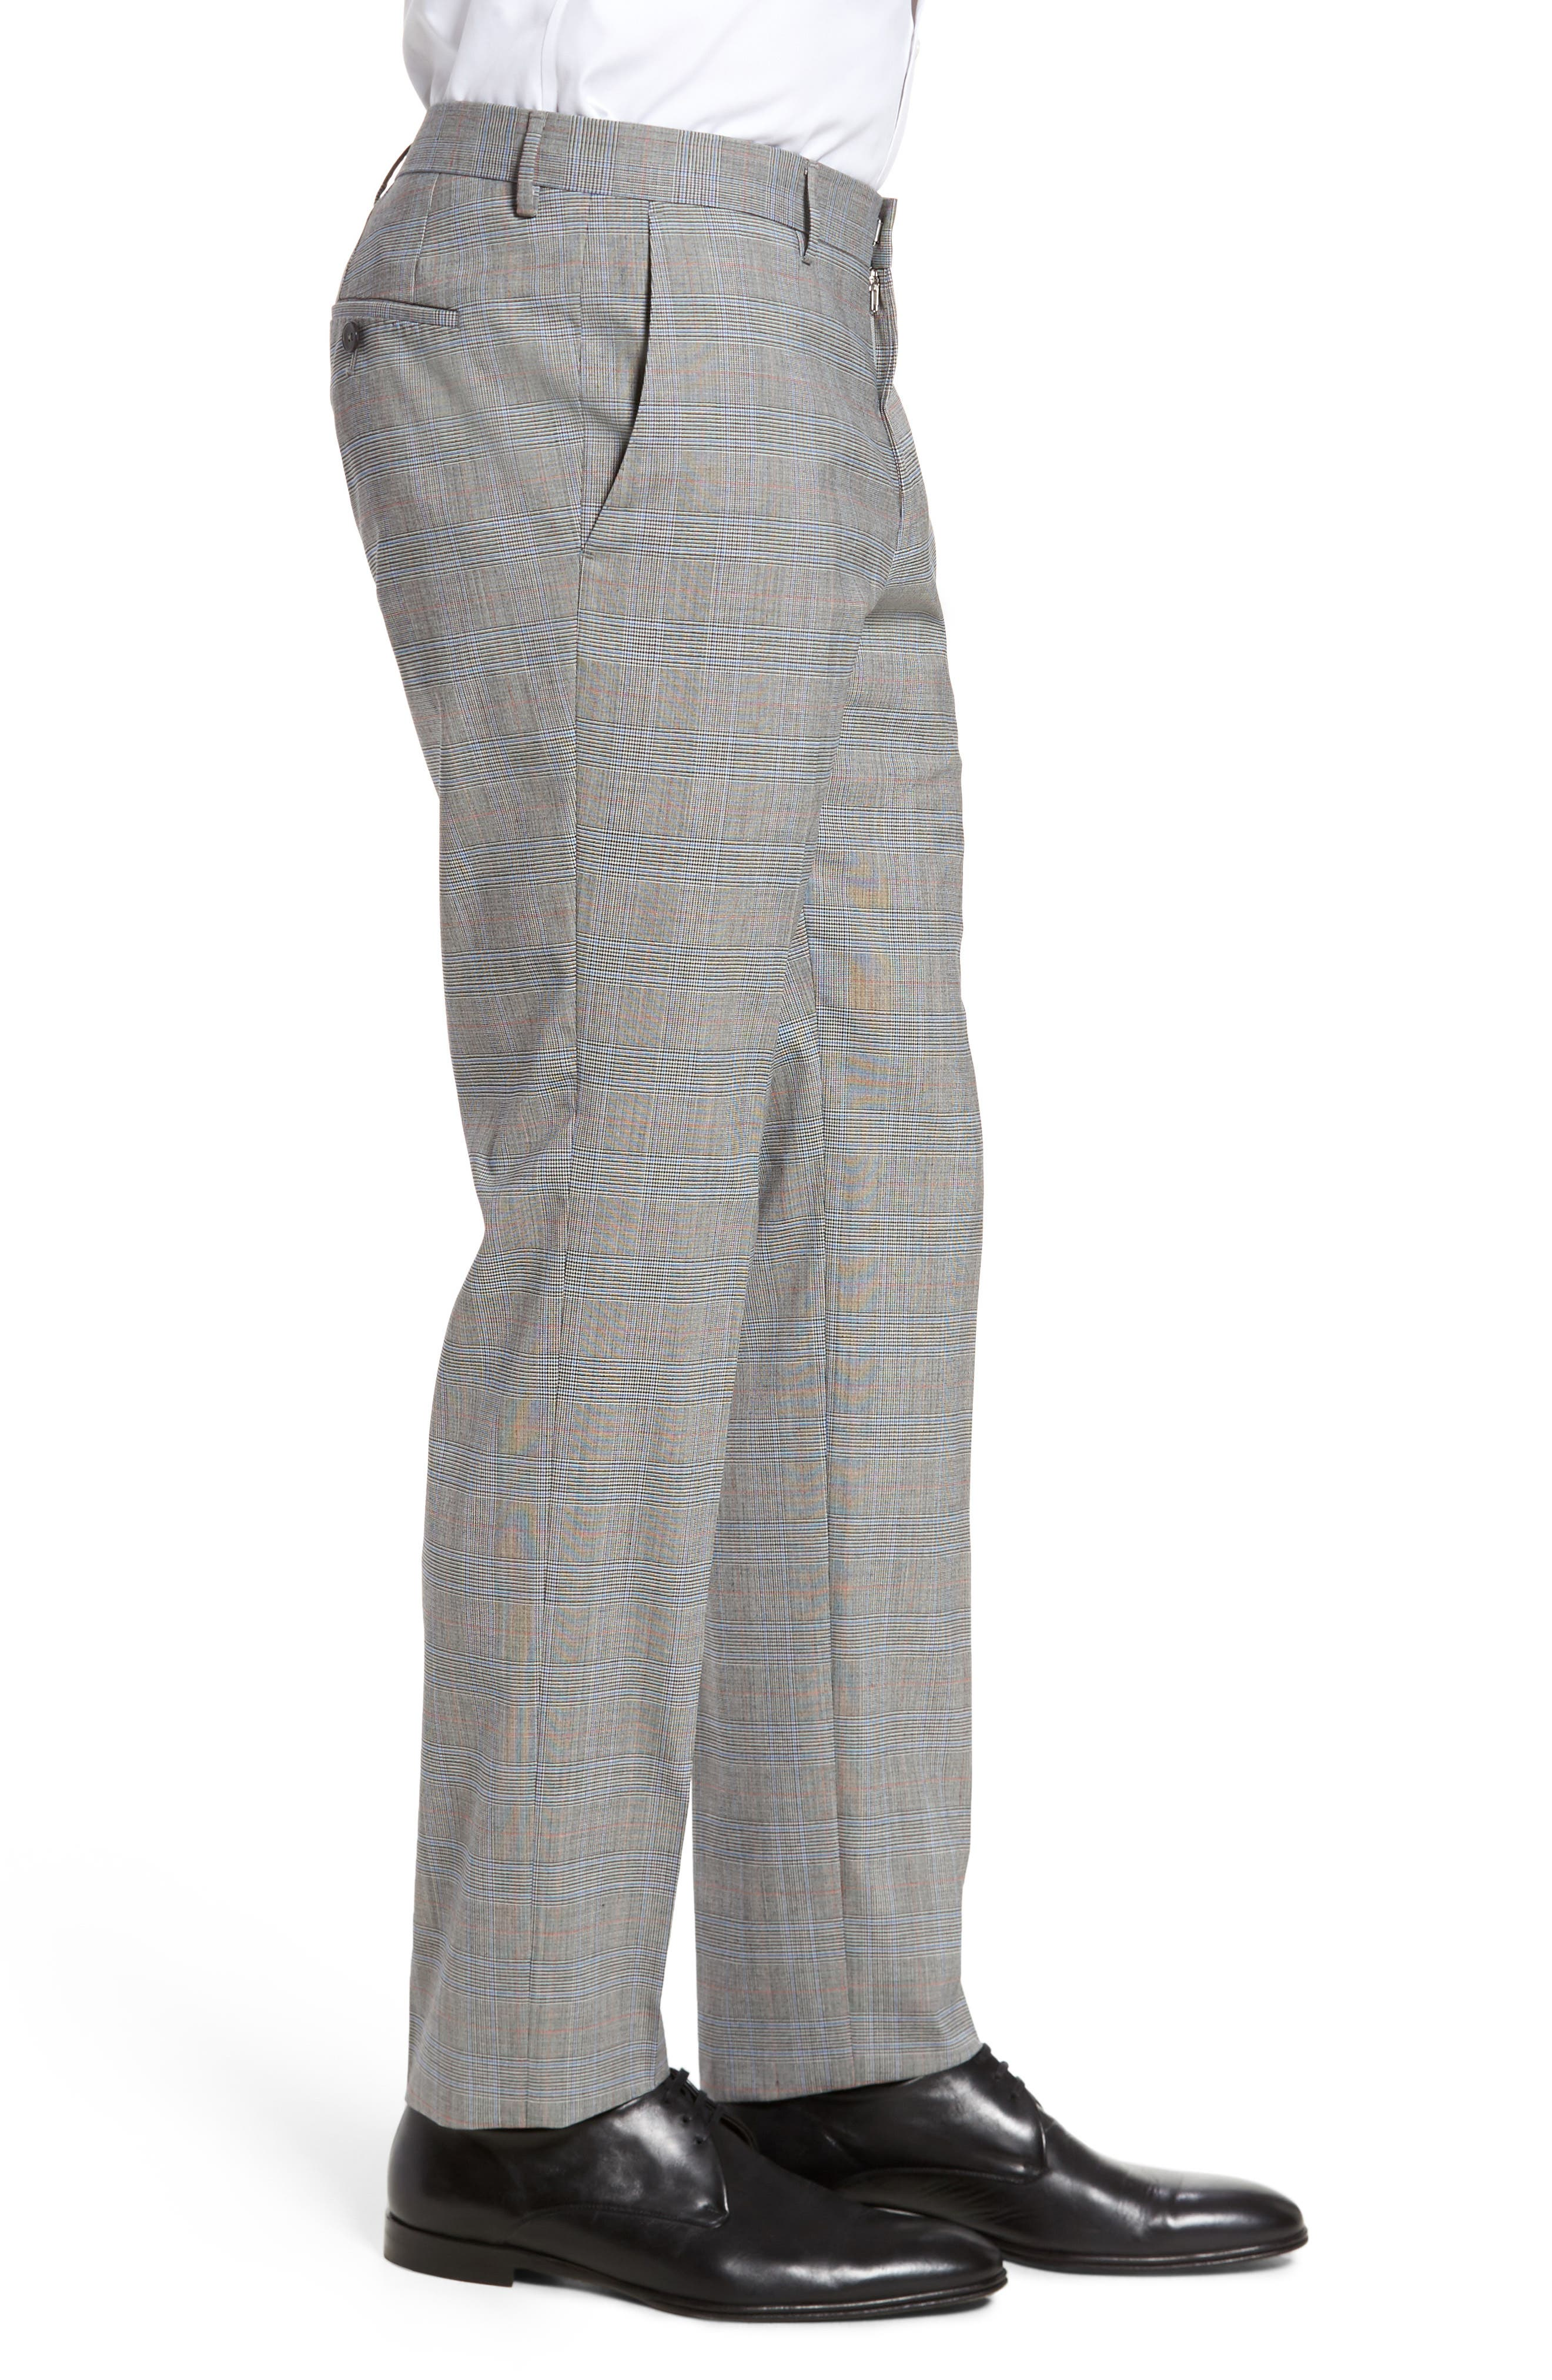 Benso Flat Front Plaid Wool Blend Trousers,                             Alternate thumbnail 4, color,                             061